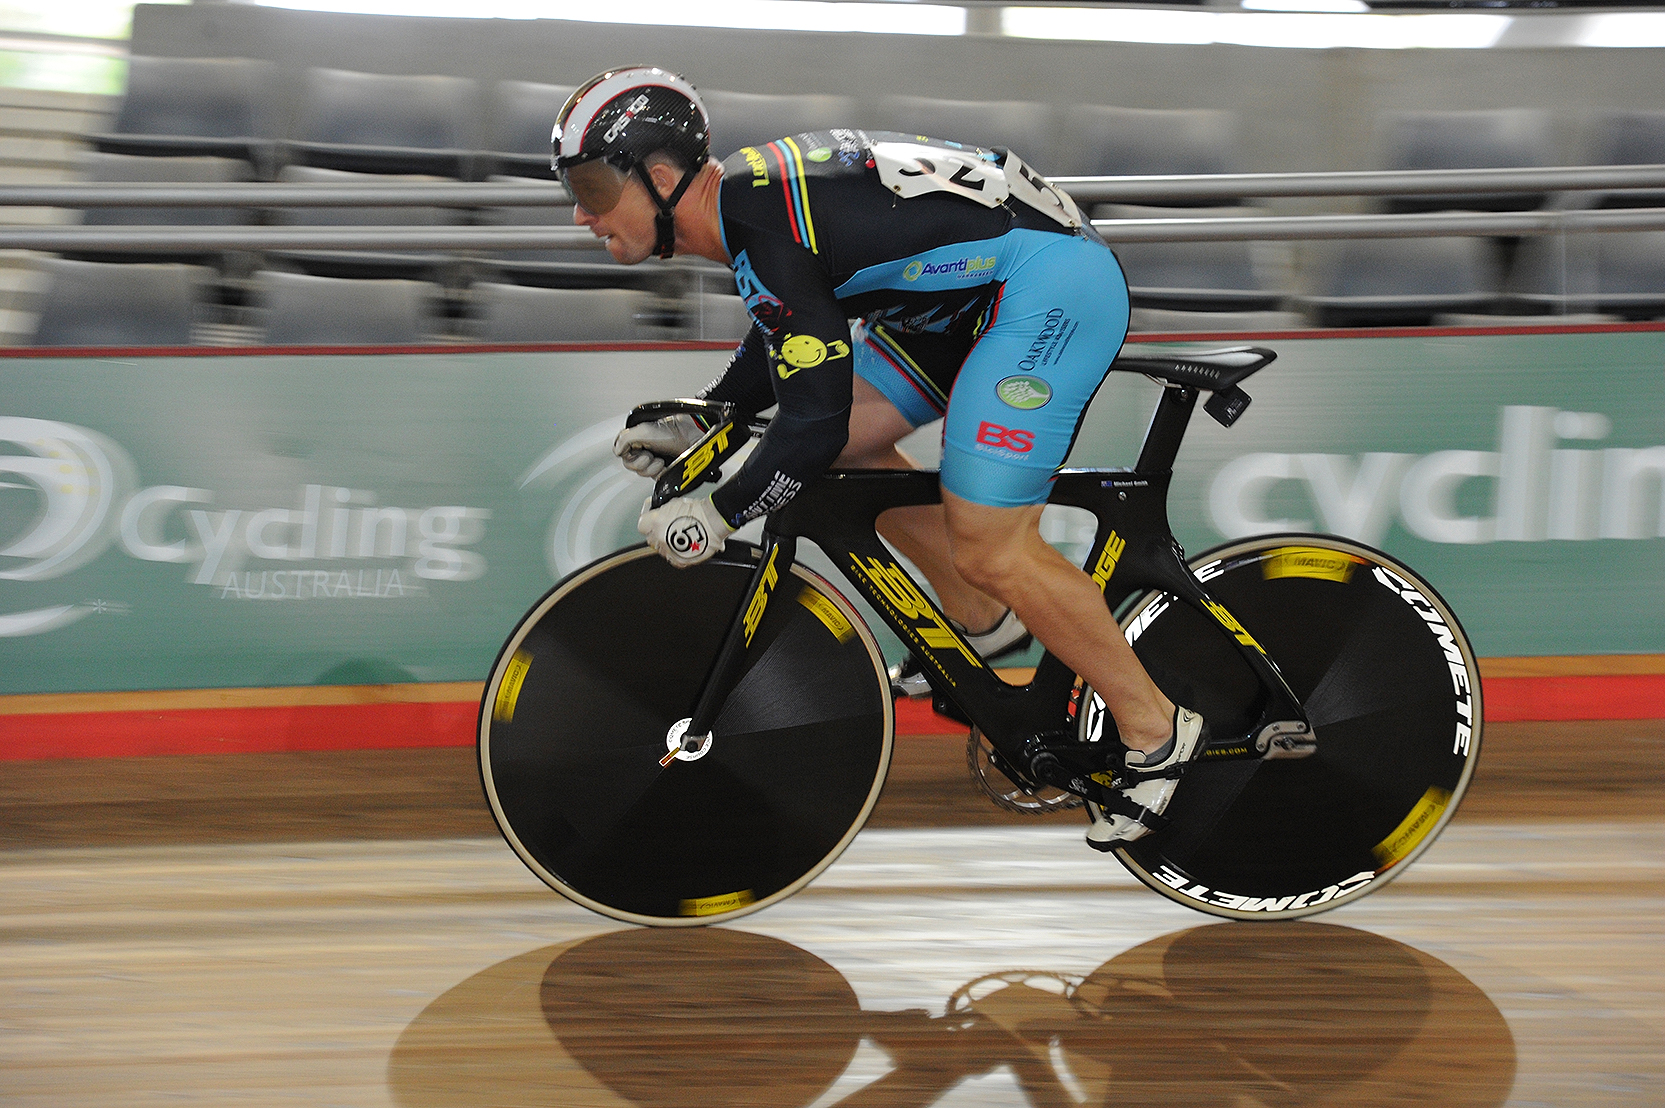 Mike Smith (BiciSport Master) took the Gold medal in the Teams Sprint and the Bronze medal in the individual Sprint at the World Masters Track Championships in Los Angeles